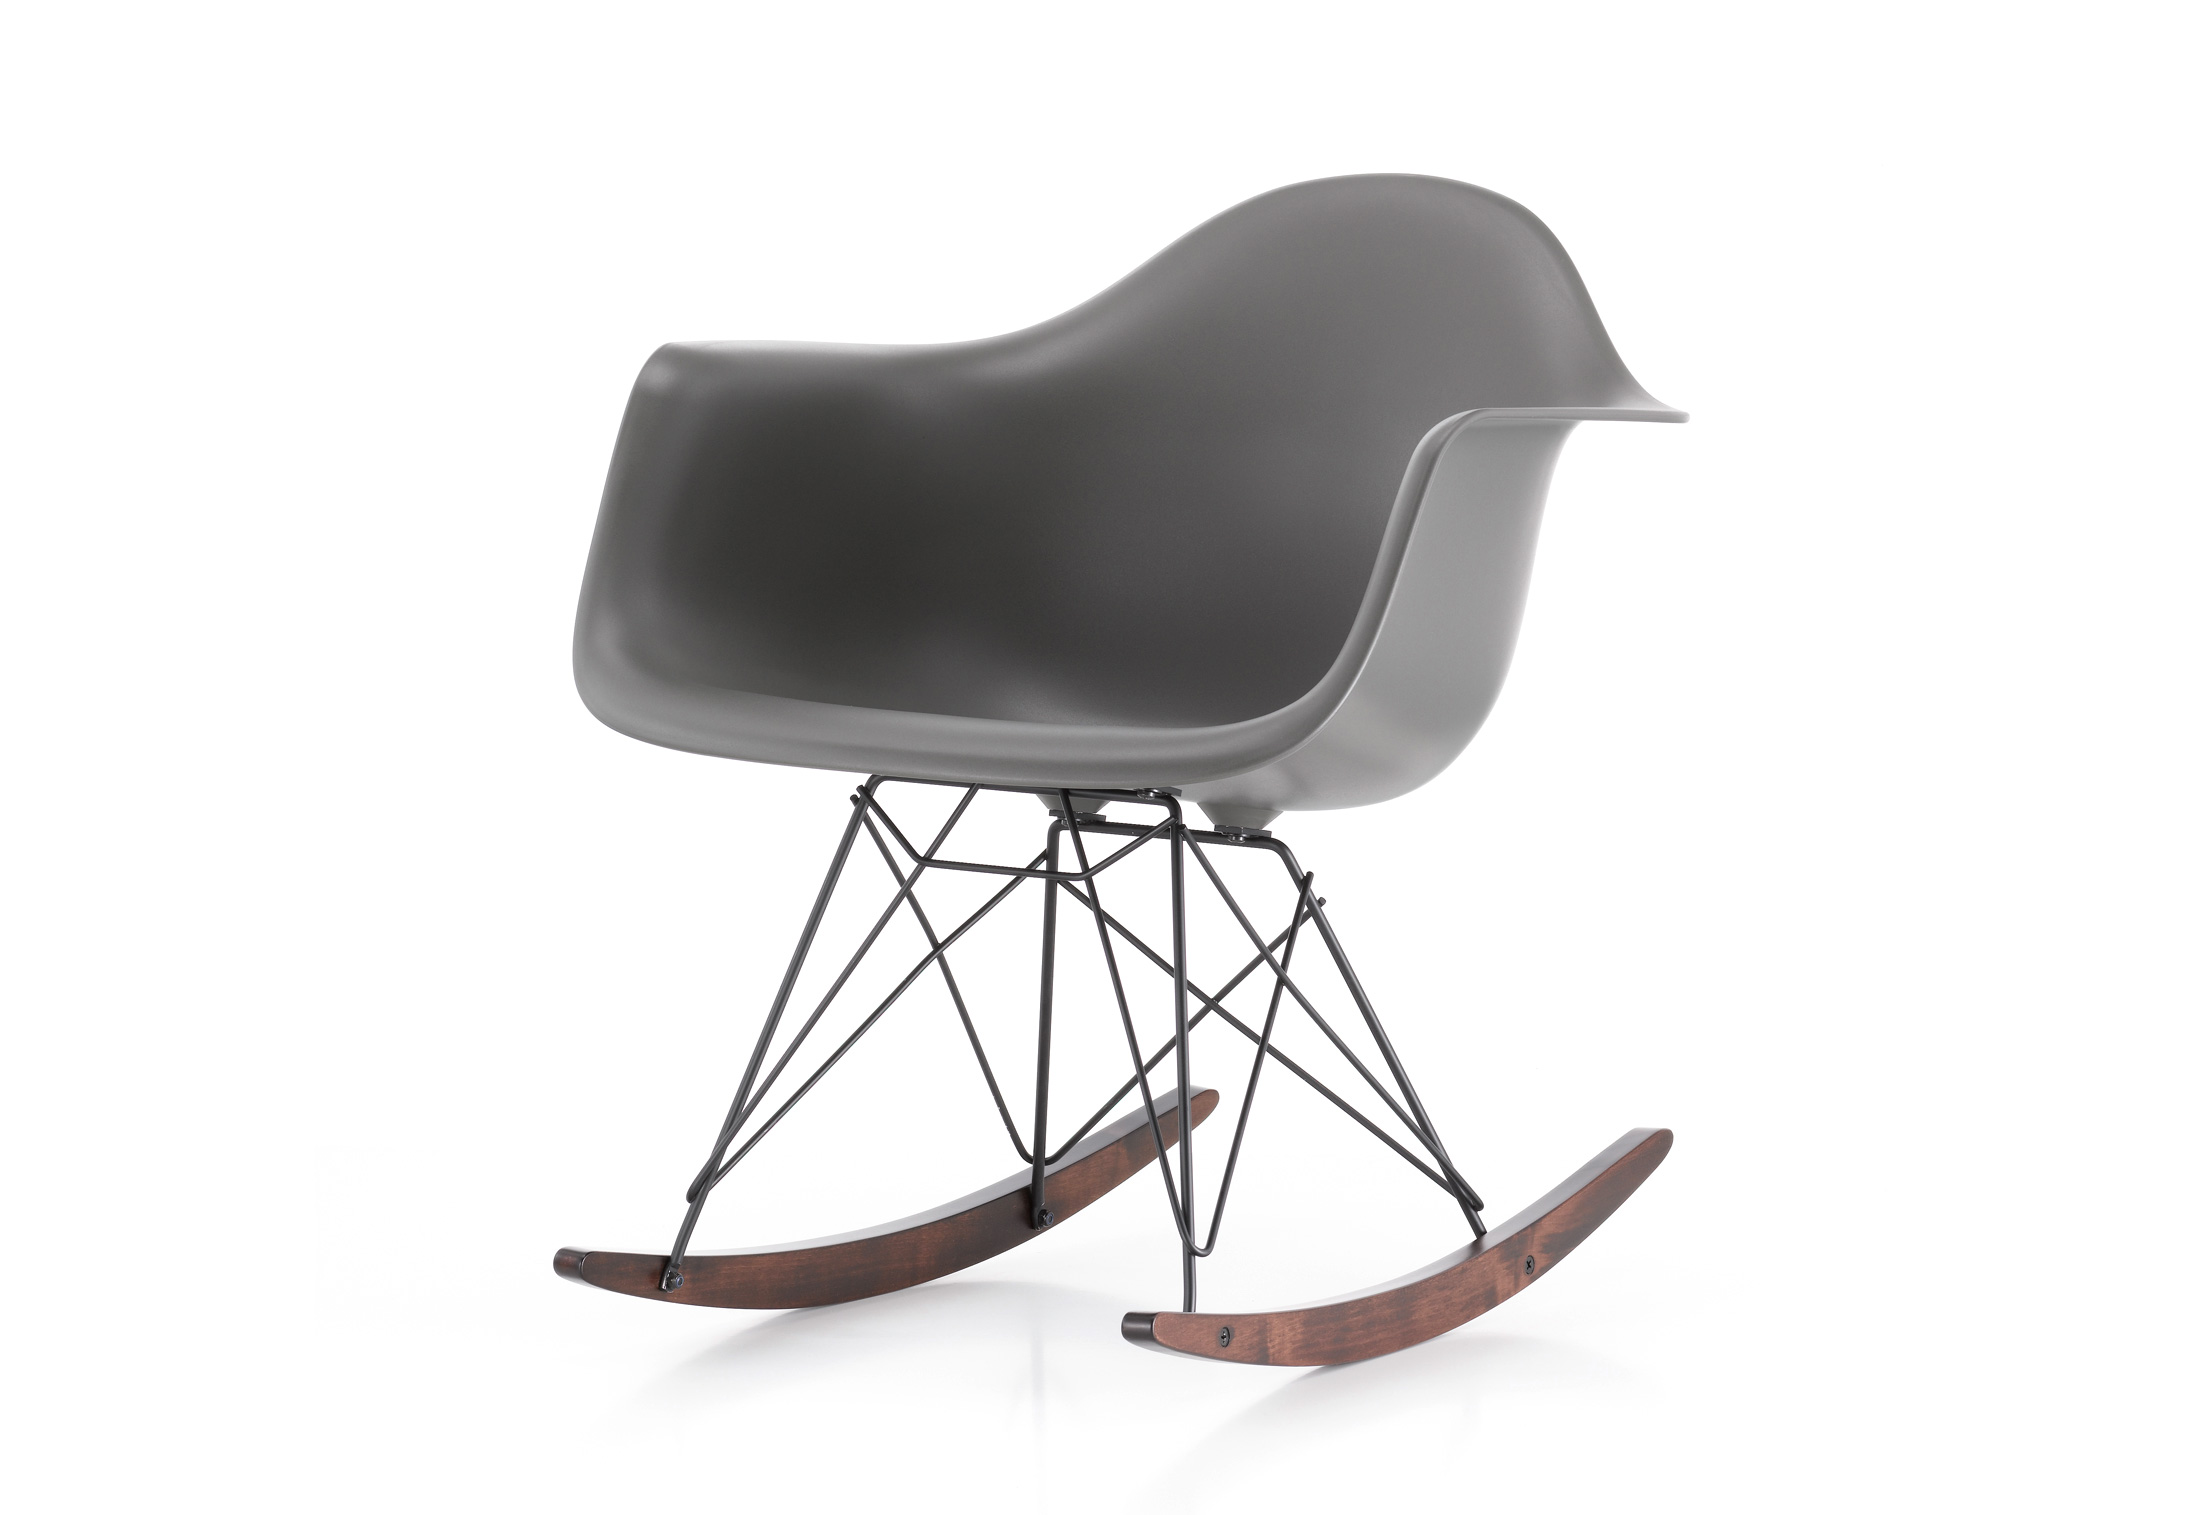 Eames plastic armchair rar by vitra stylepark for Chaise rar eames vitra